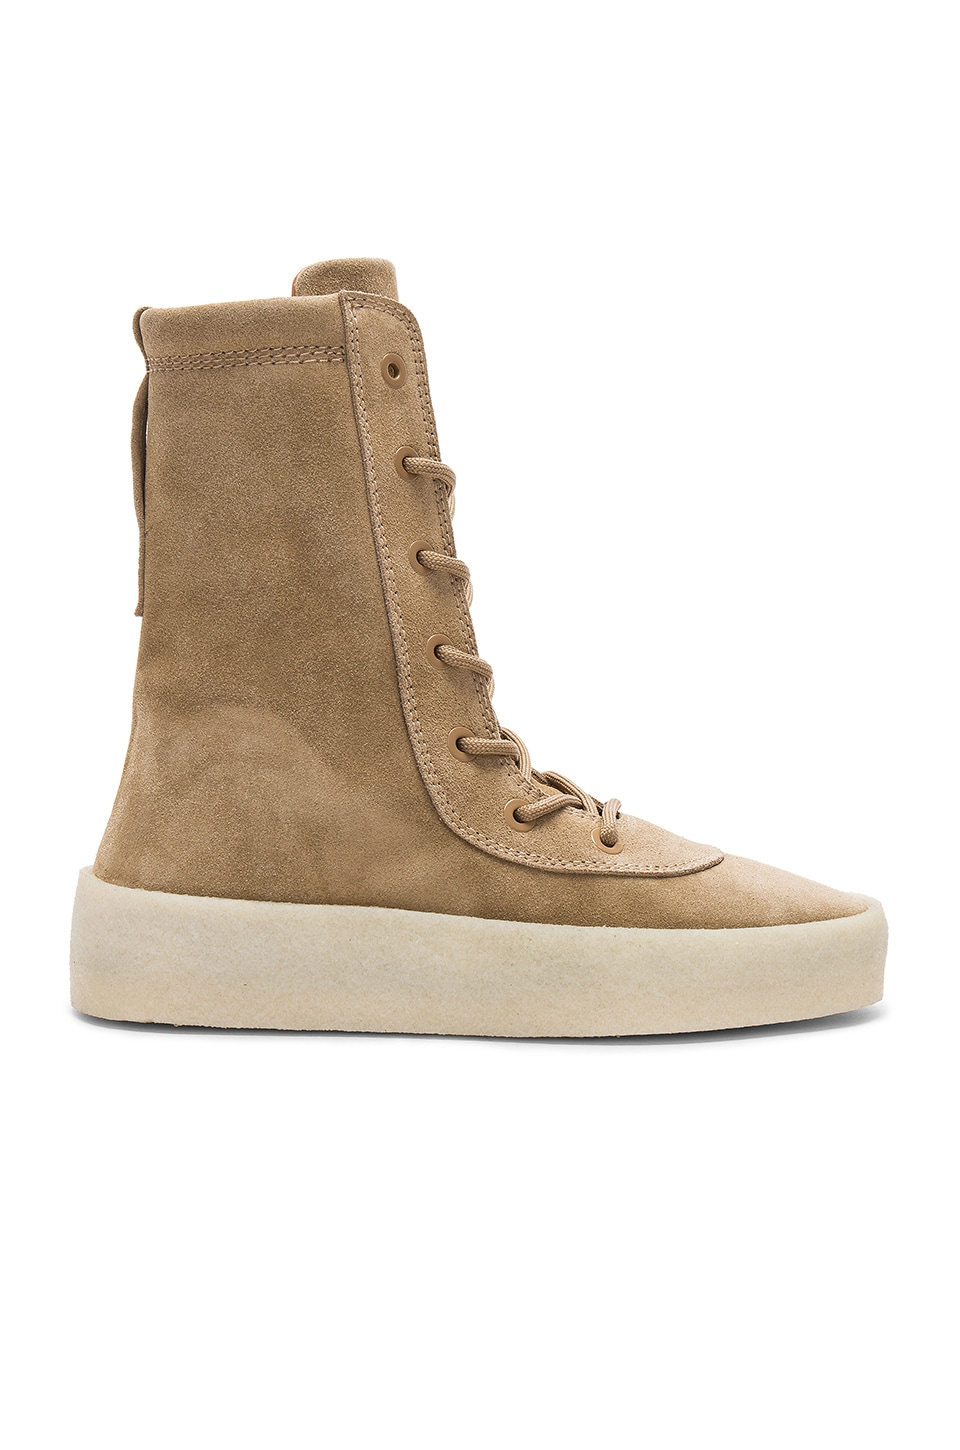 d0519009089 YEEZY Season 4 Crepe Boot in Taupe